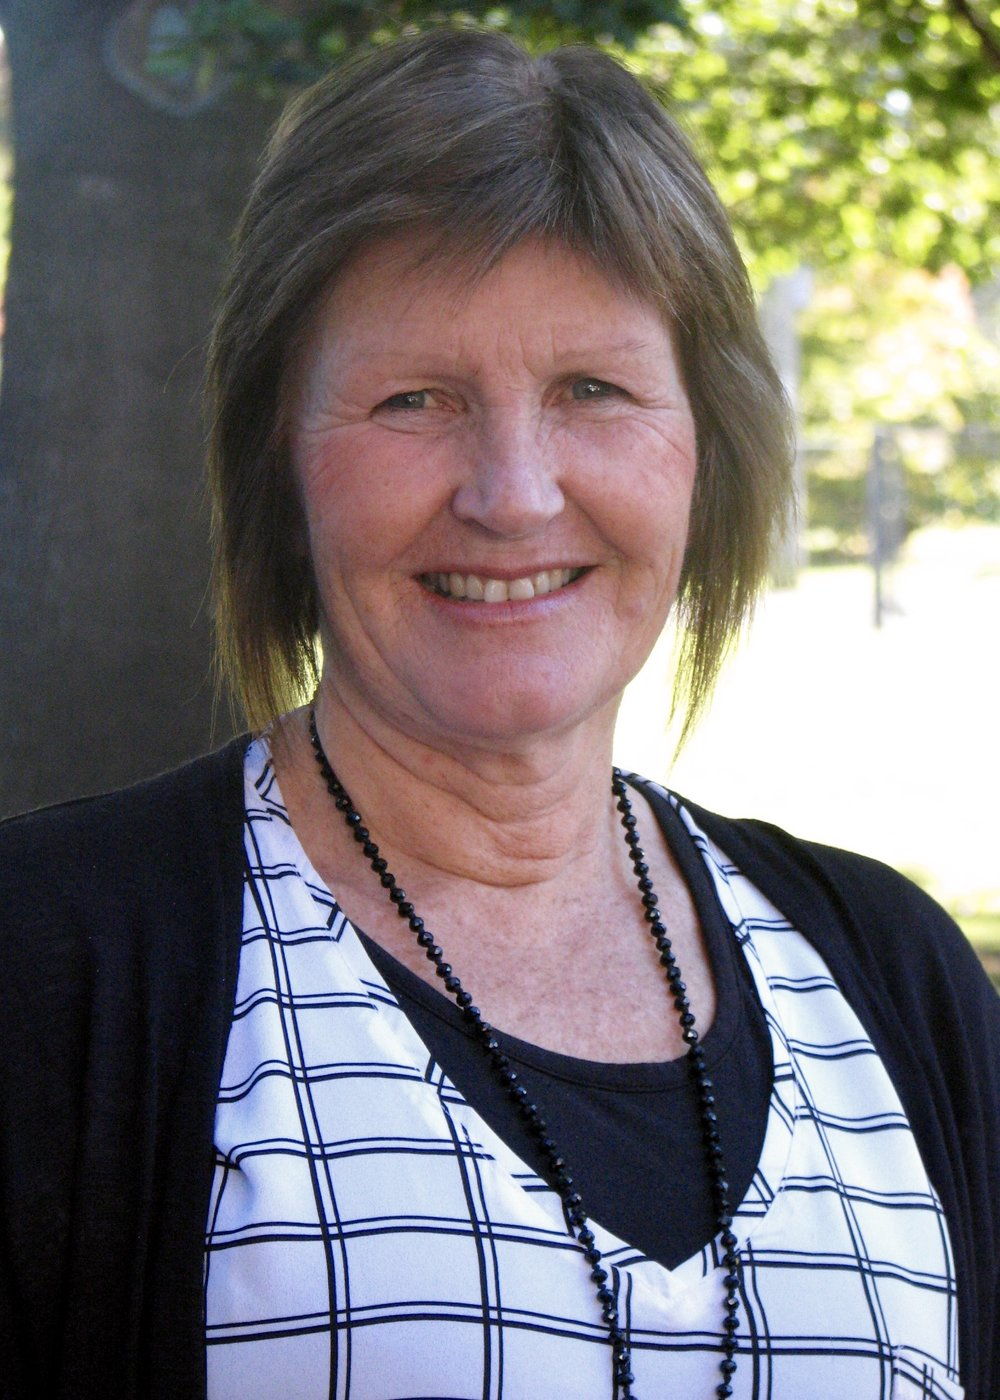 Linda Wallis - Deputy Principal and Year 5/6 teacher